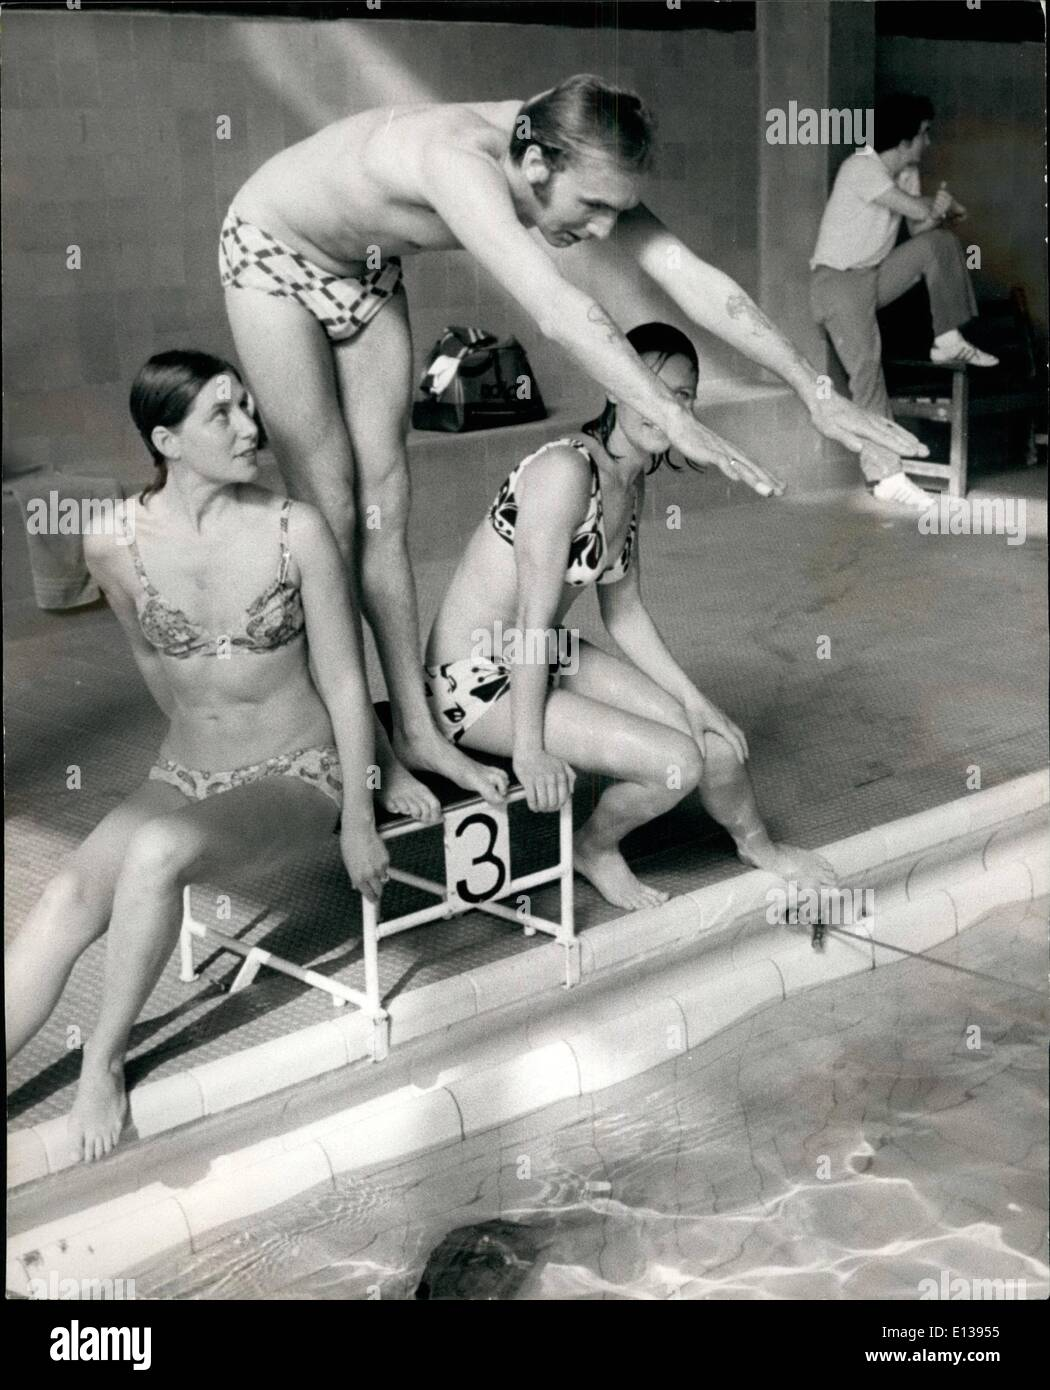 Feb. 29, 2012 - Ray Pert takes the plunge! Two of Ray's fans cheer and encourage him during his swimming training. Here Rap prepares to make a racing dive, the pool at the Gloucester Leisure Centre. - Stock Image